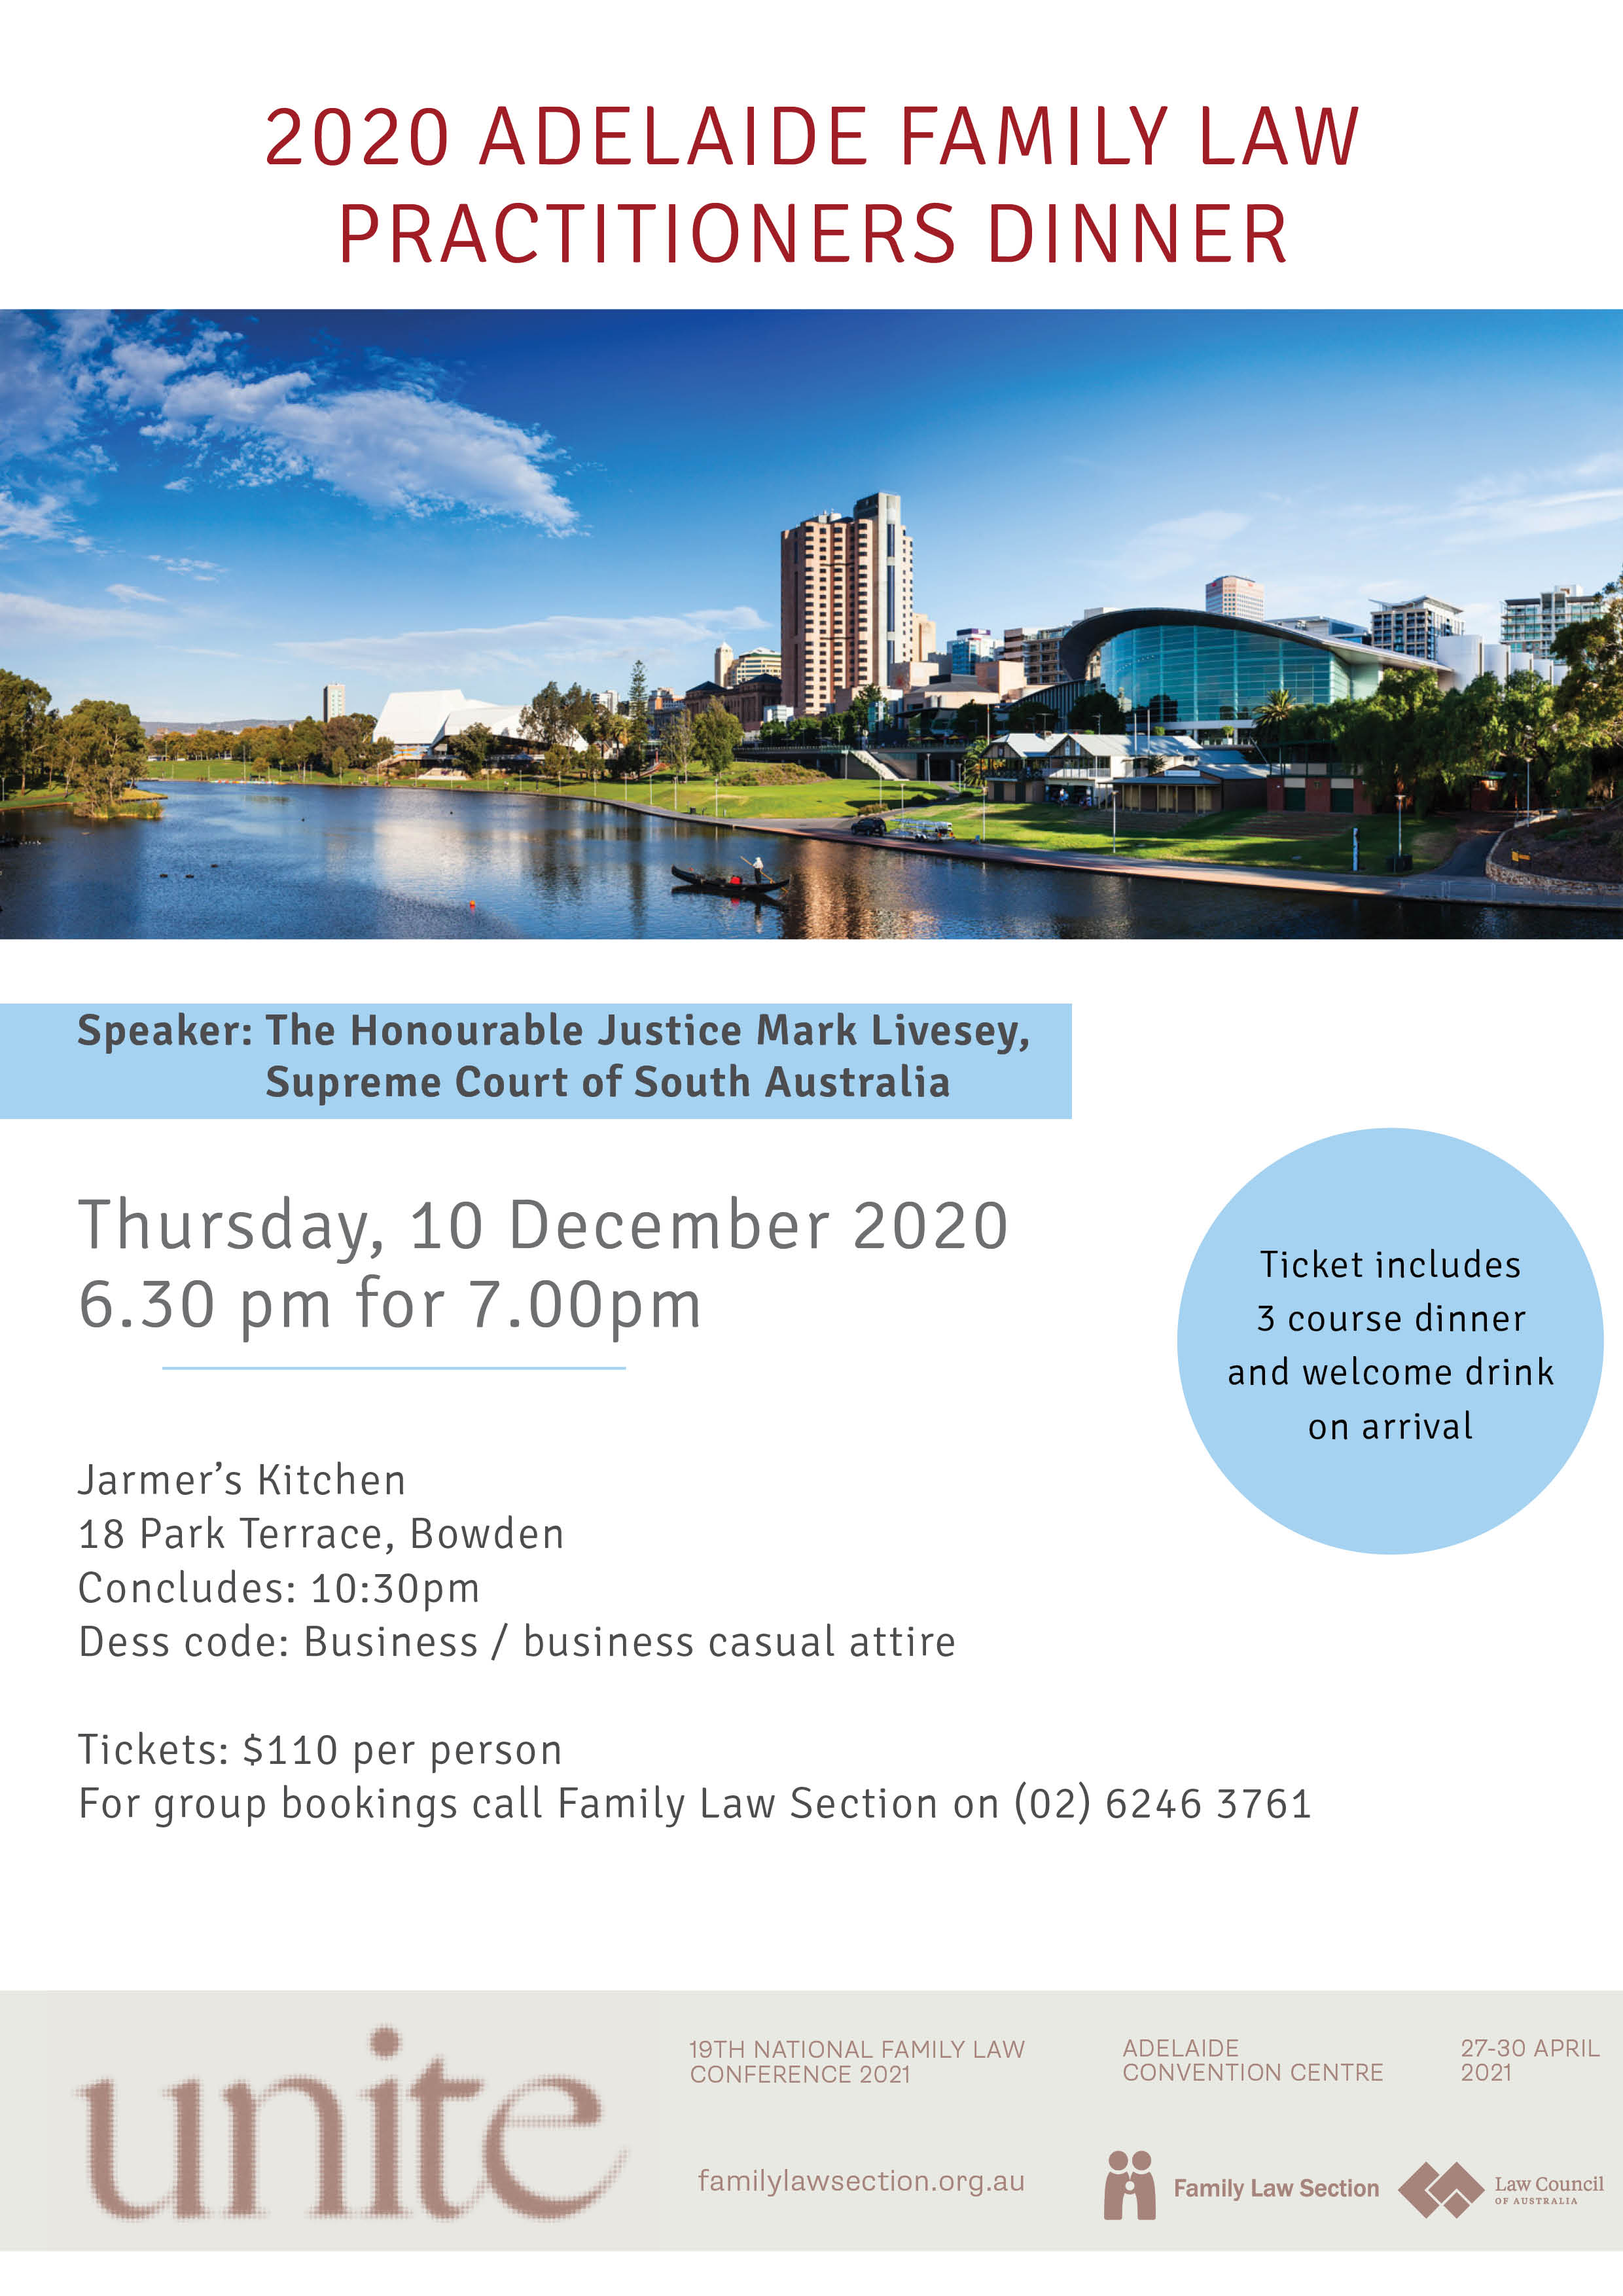 2020 Adelaide Family Law Practitioners Dinner Flyer